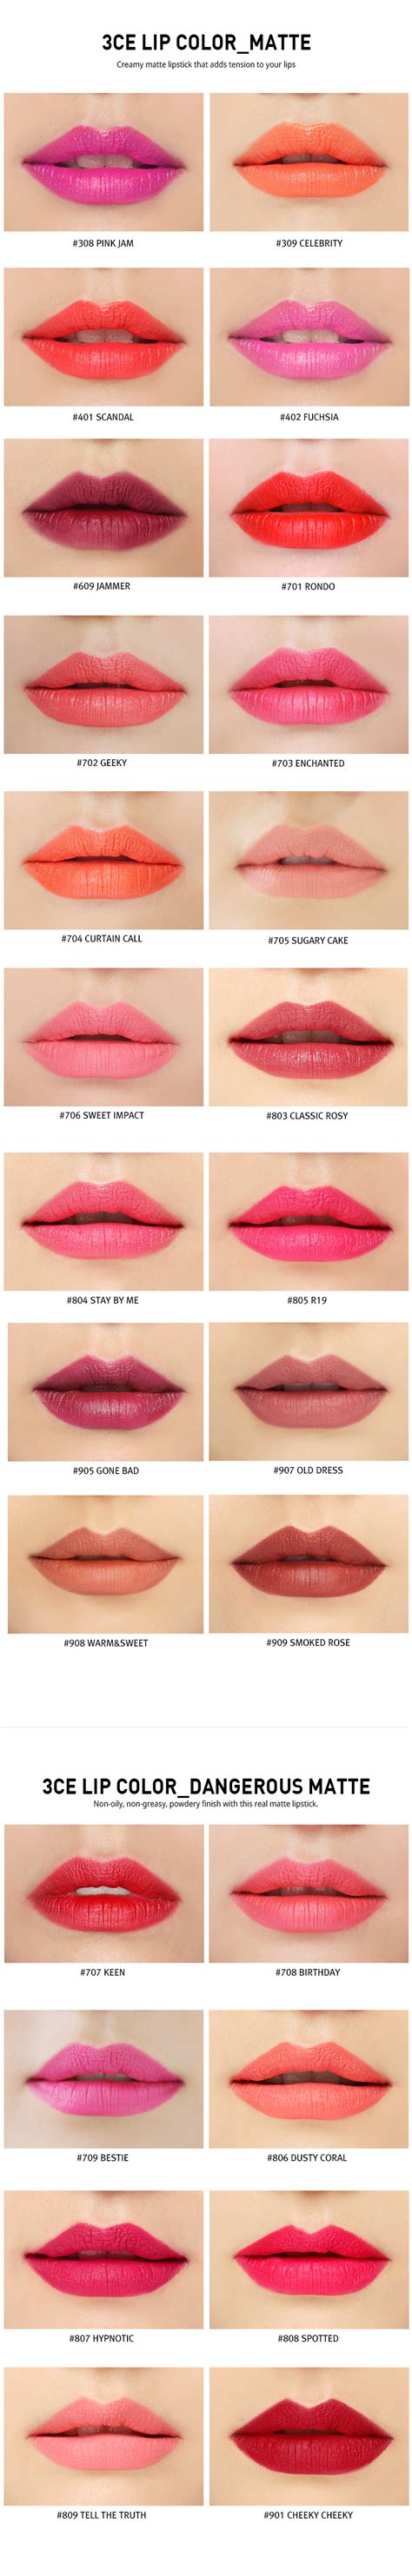 3ce matte lip color kbeauty original